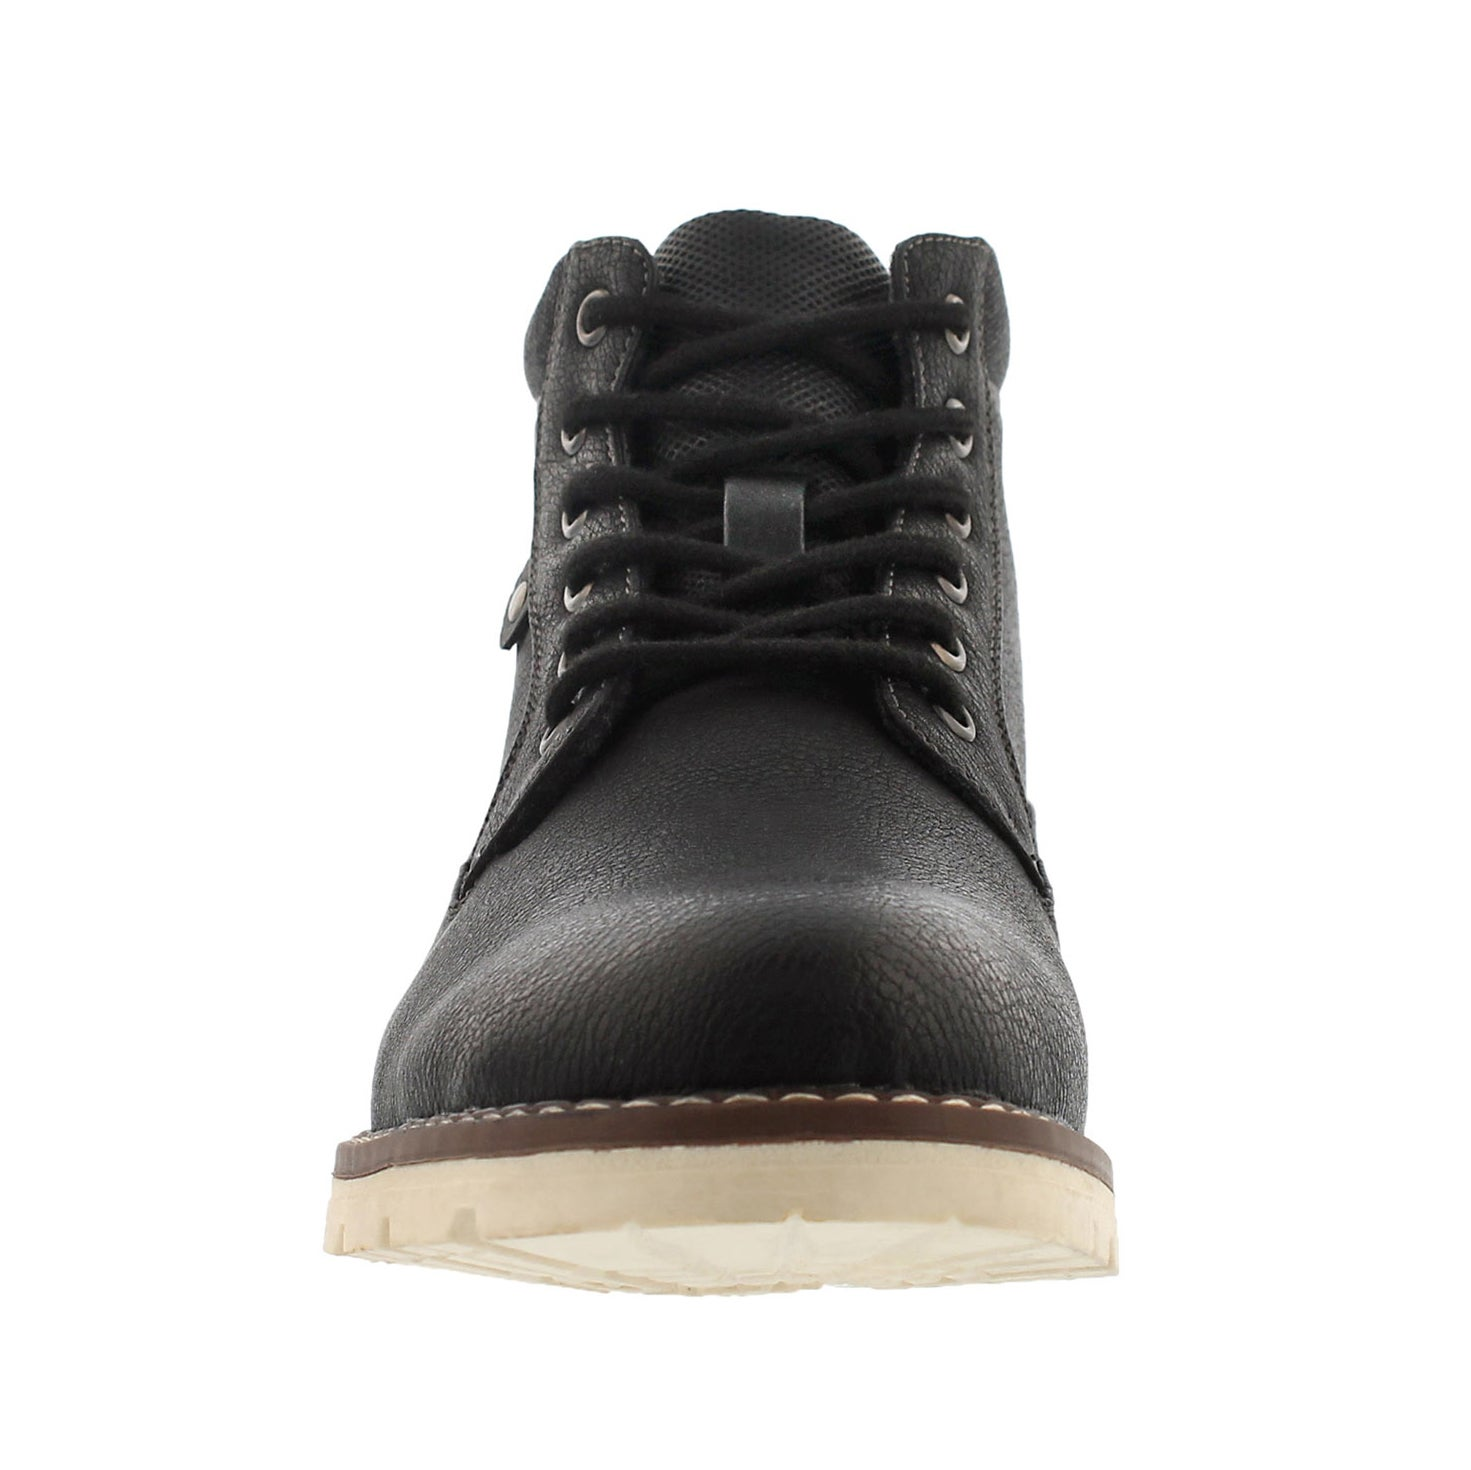 Mns Hallway black lace up ankle boot